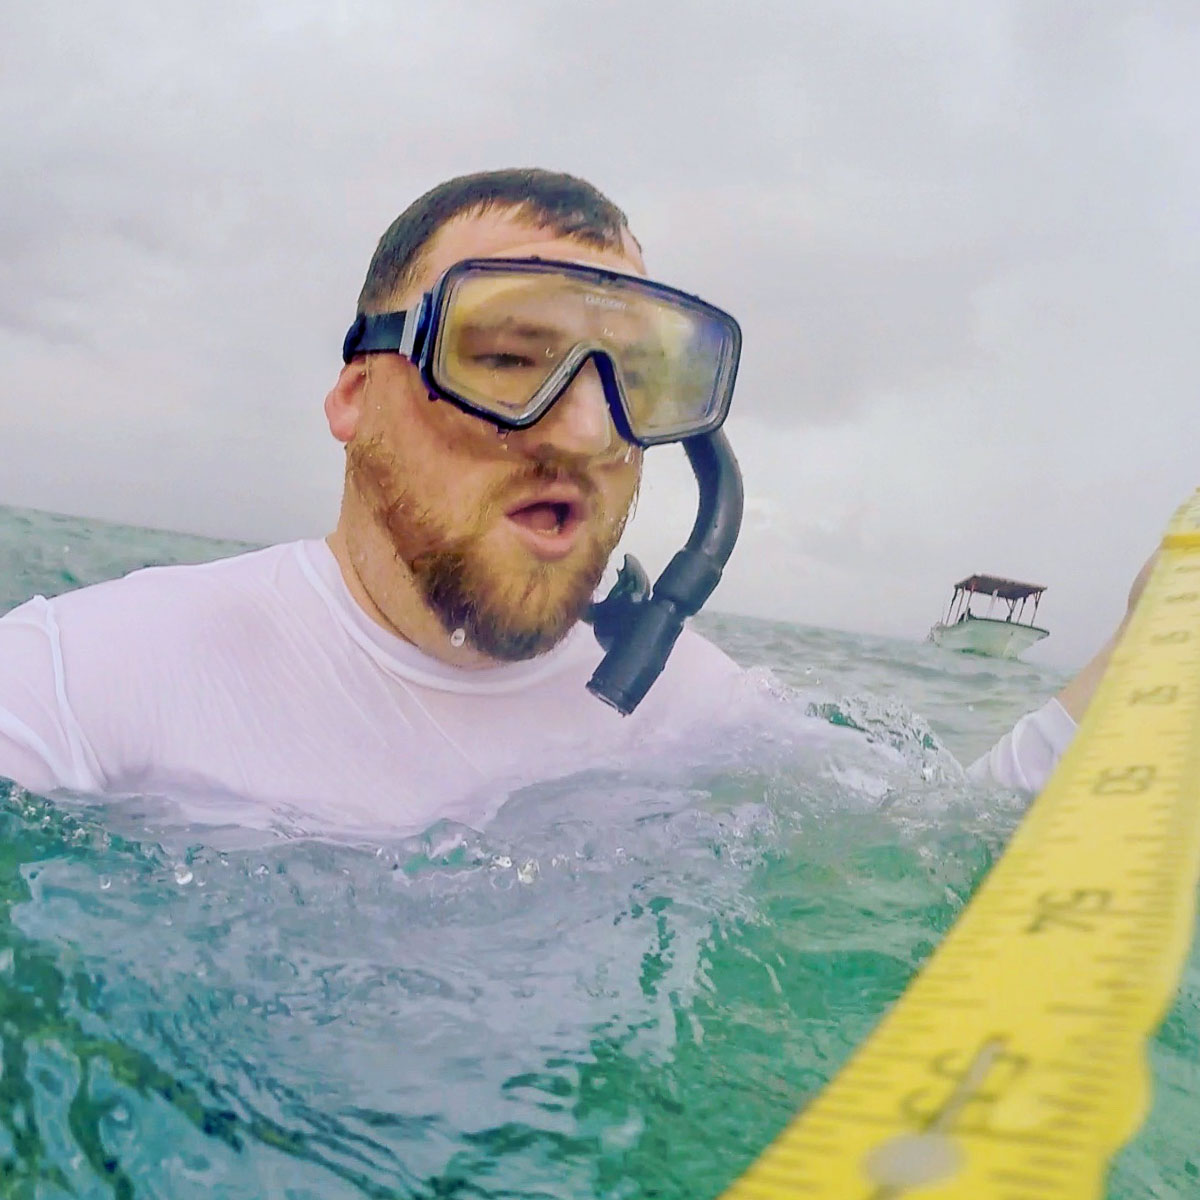 Colin Colbourn measuring while snorkeling